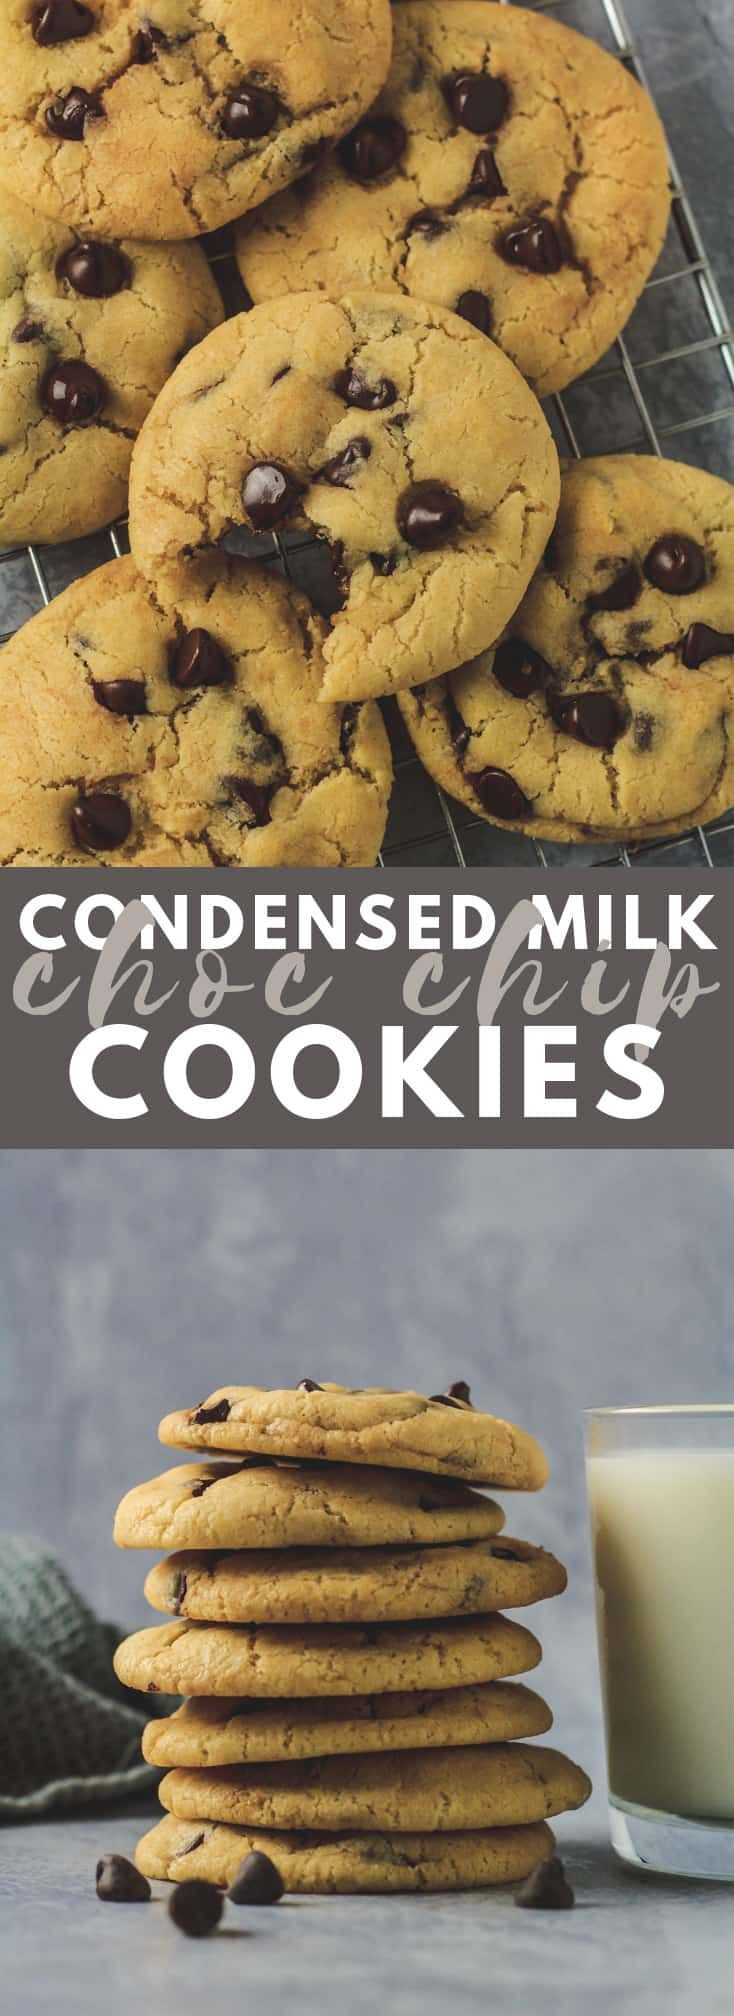 Condensed Milk Chocolate Chip Cookies Incredibly Thick Soft And Chewy Coo Milk Chocolate Chip Cookies Cookies Recipes Chocolate Chip Chocolate Chip Cookies